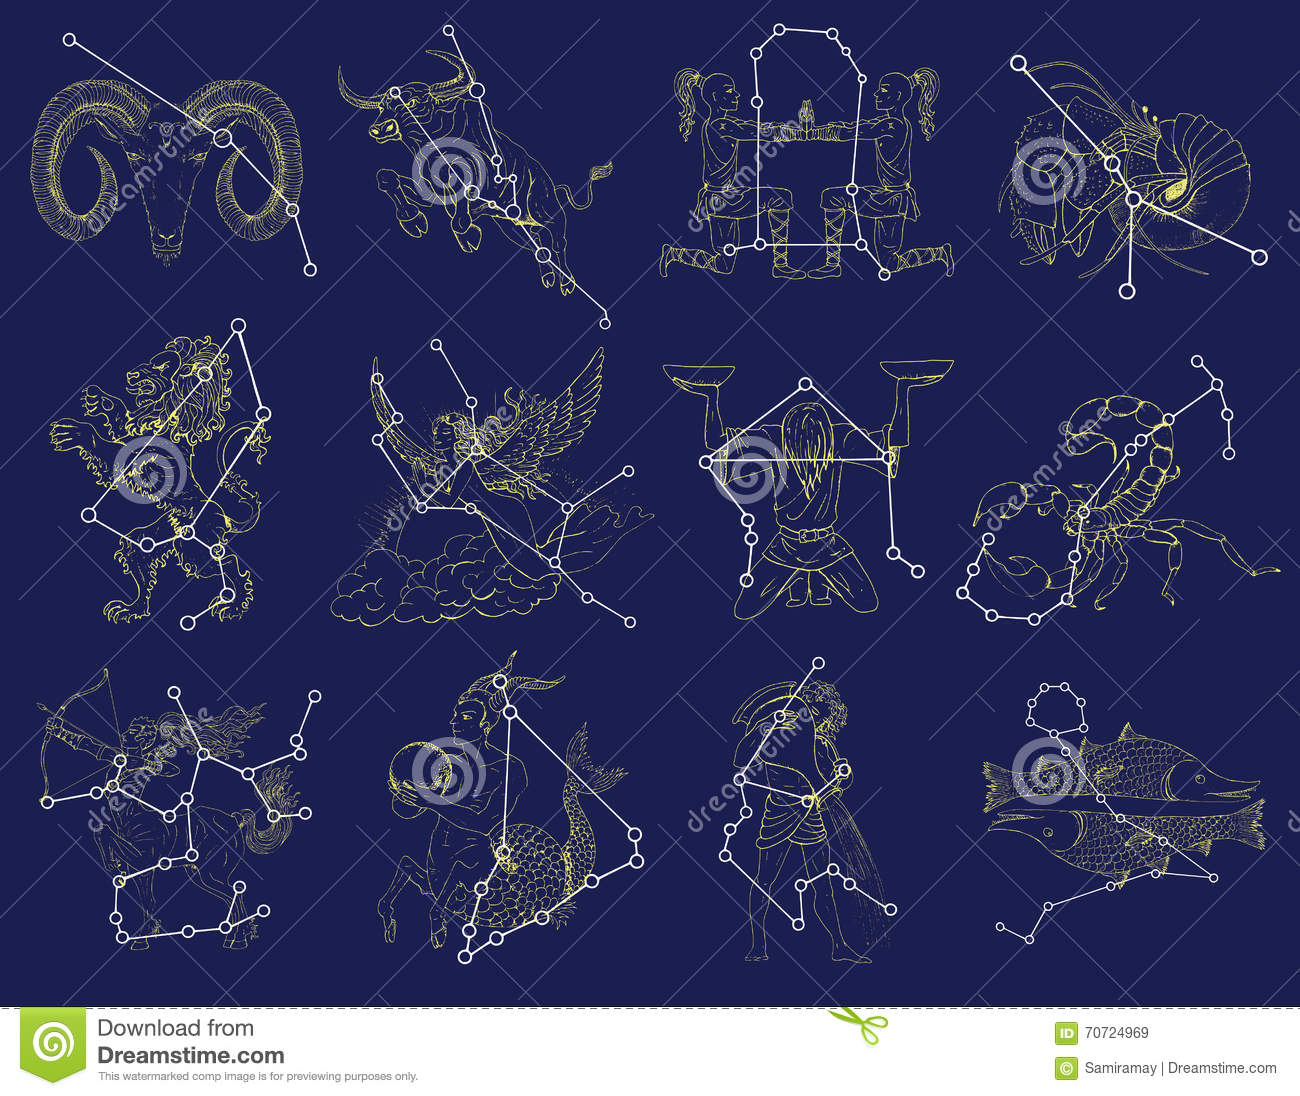 All Constellations Of The Zodiac Placez Avec Des Signes...